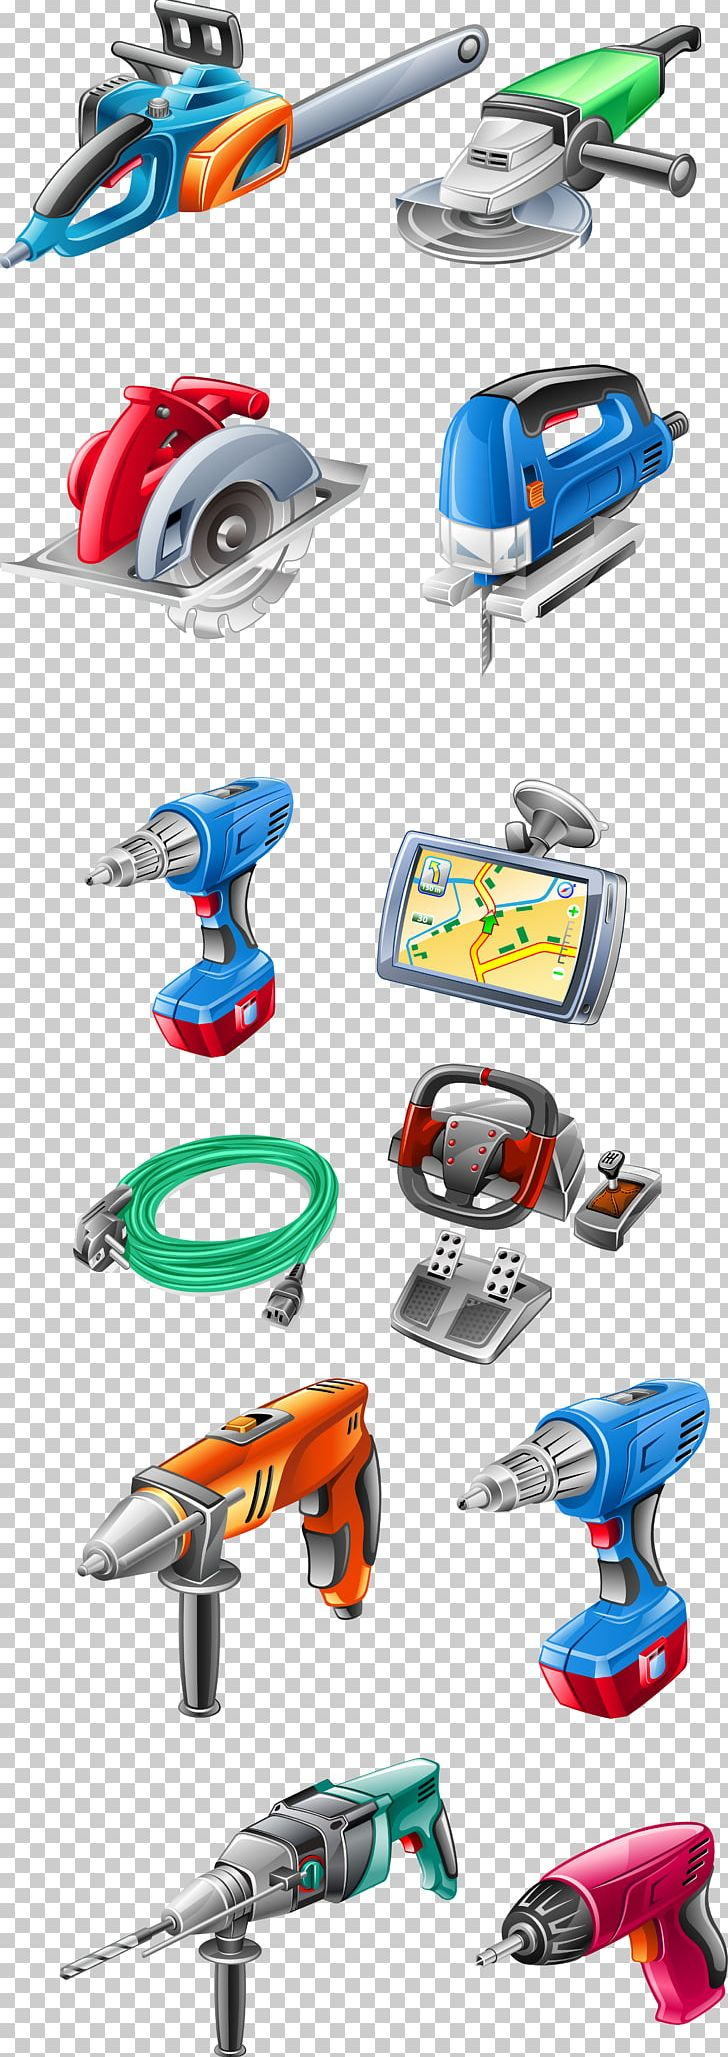 Euclidean Power Tool Icon PNG, Clipart, Assembly, Cable, Clip Art, Construction Tools, Drill Free PNG Download